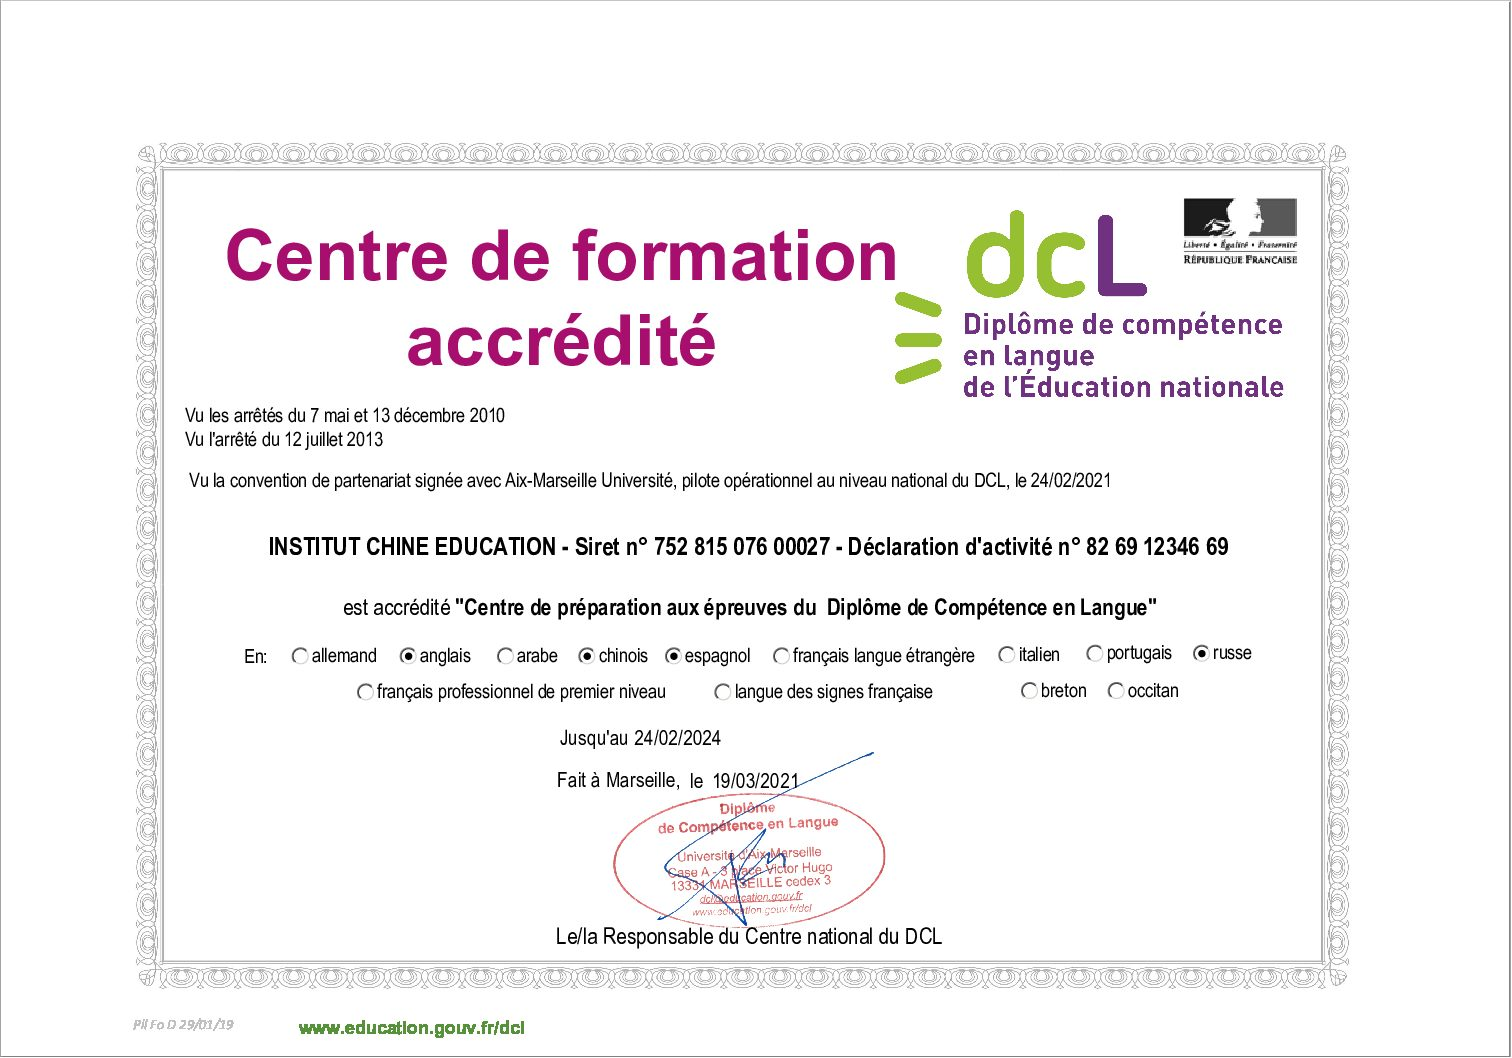 Attestation accreditation CNDCL D 290119 - INSTITUT CHINE EDUCATION 24.02.2024